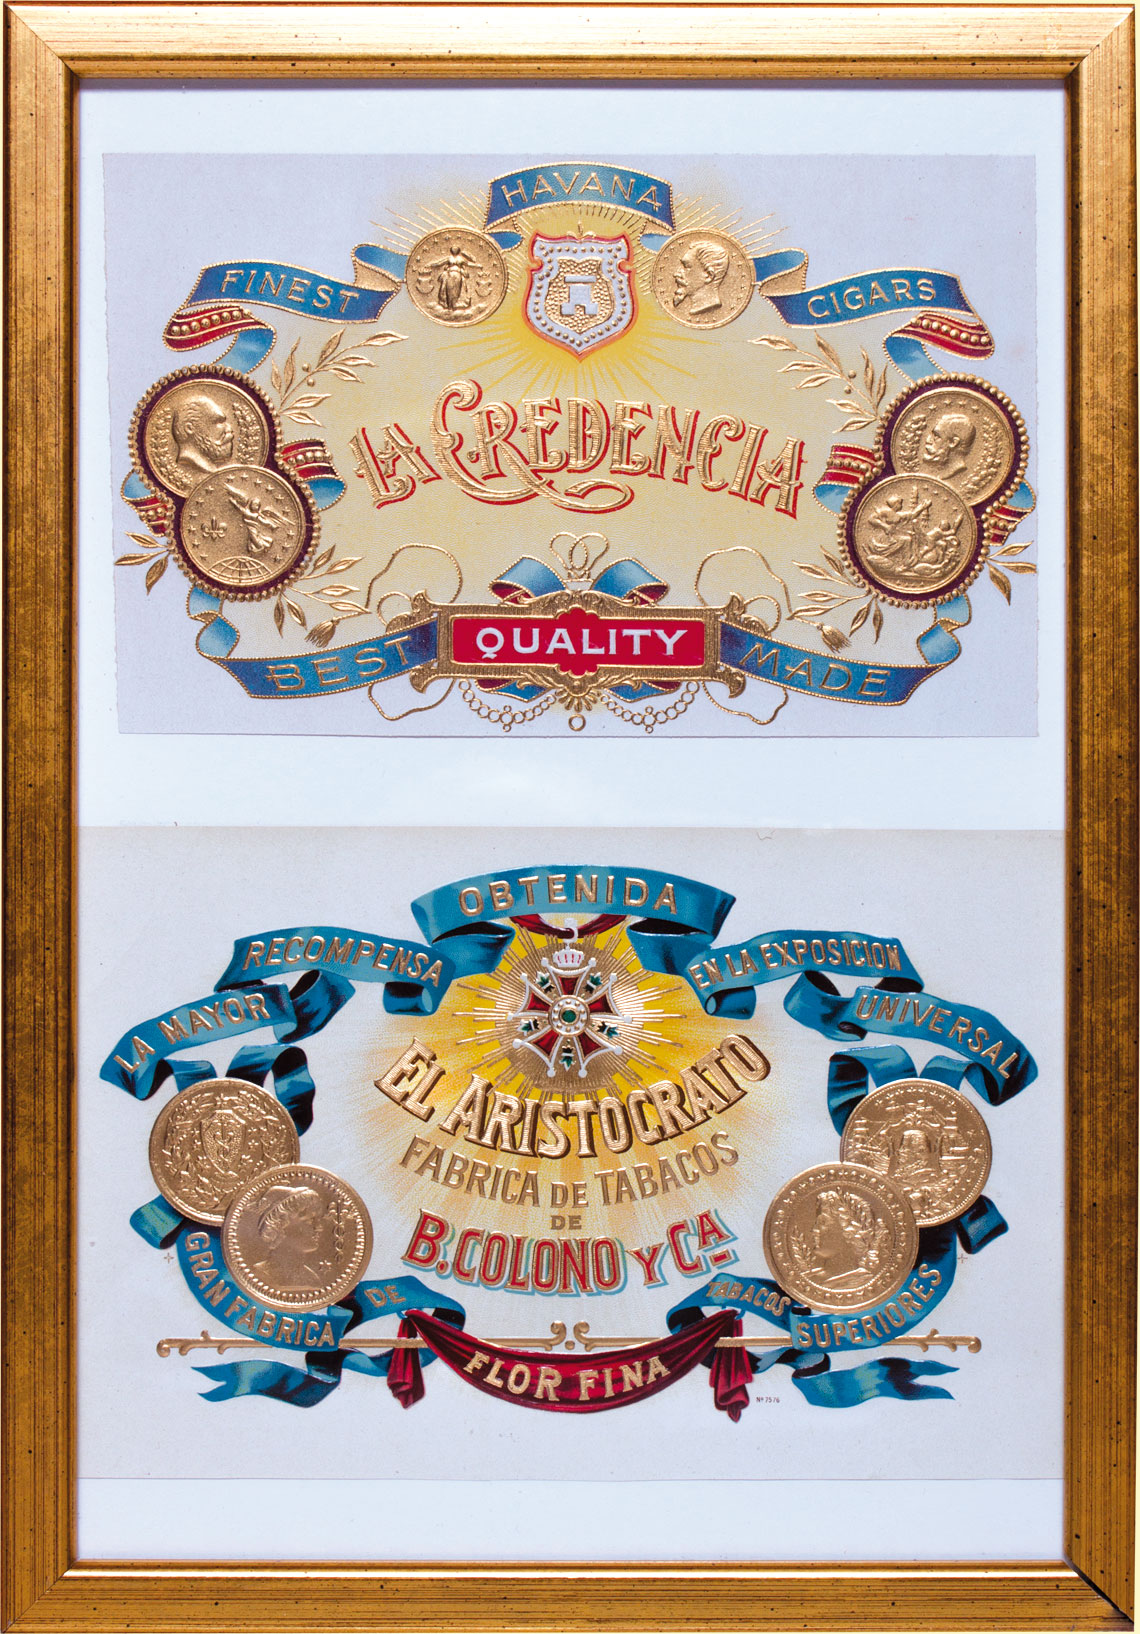 Old motifs from a historic cigar label